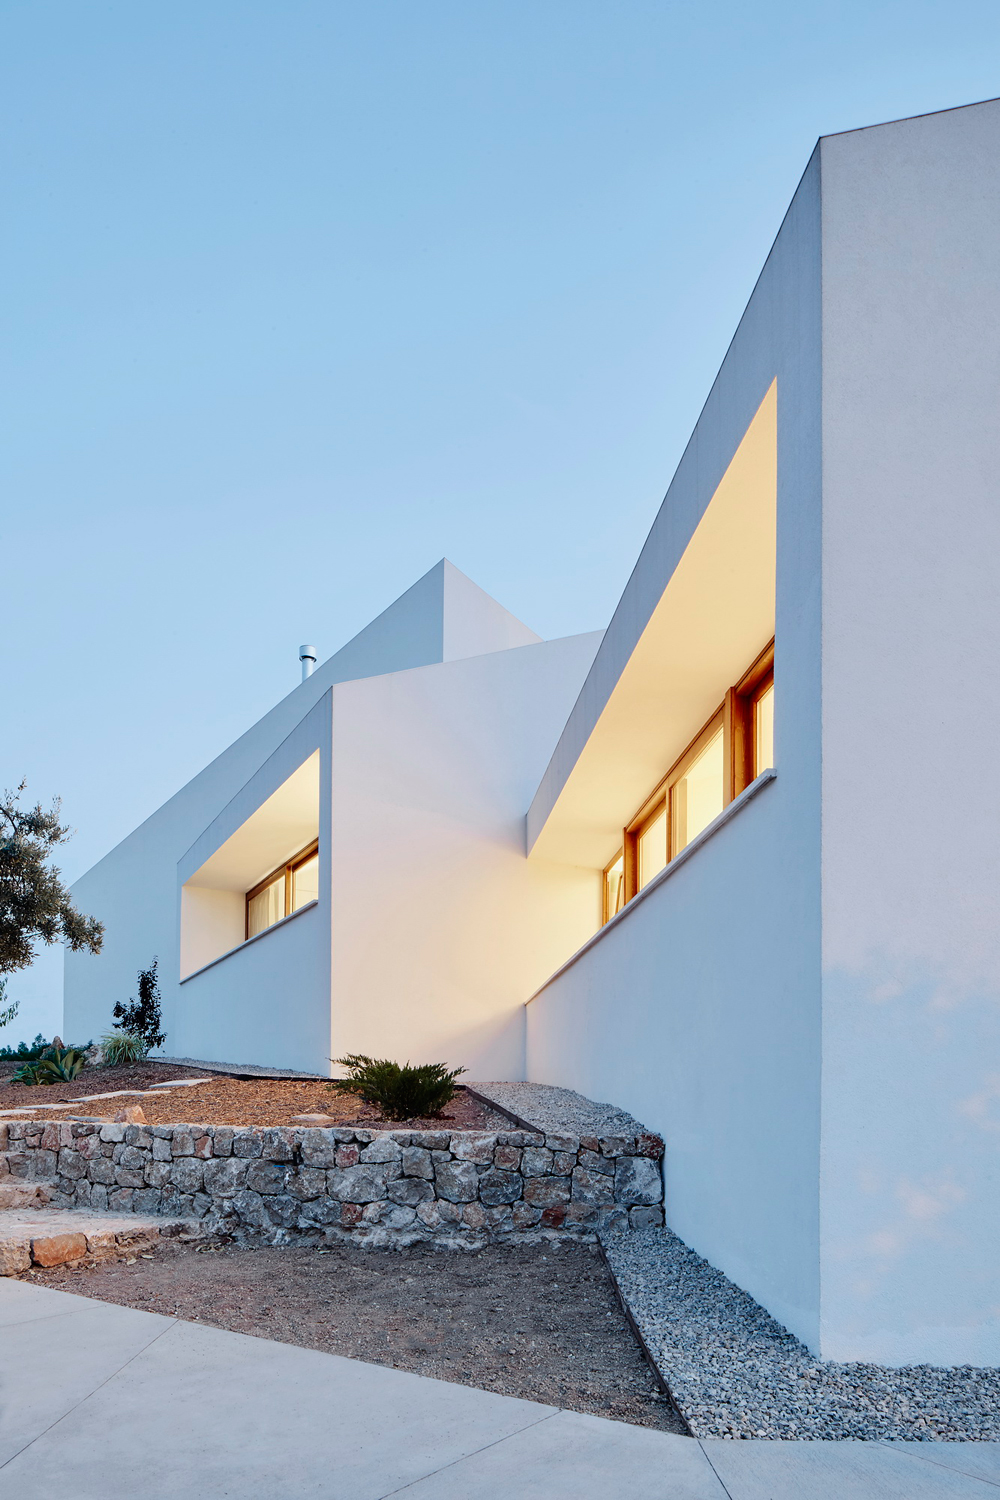 MM House designed by OHLAB Estudio